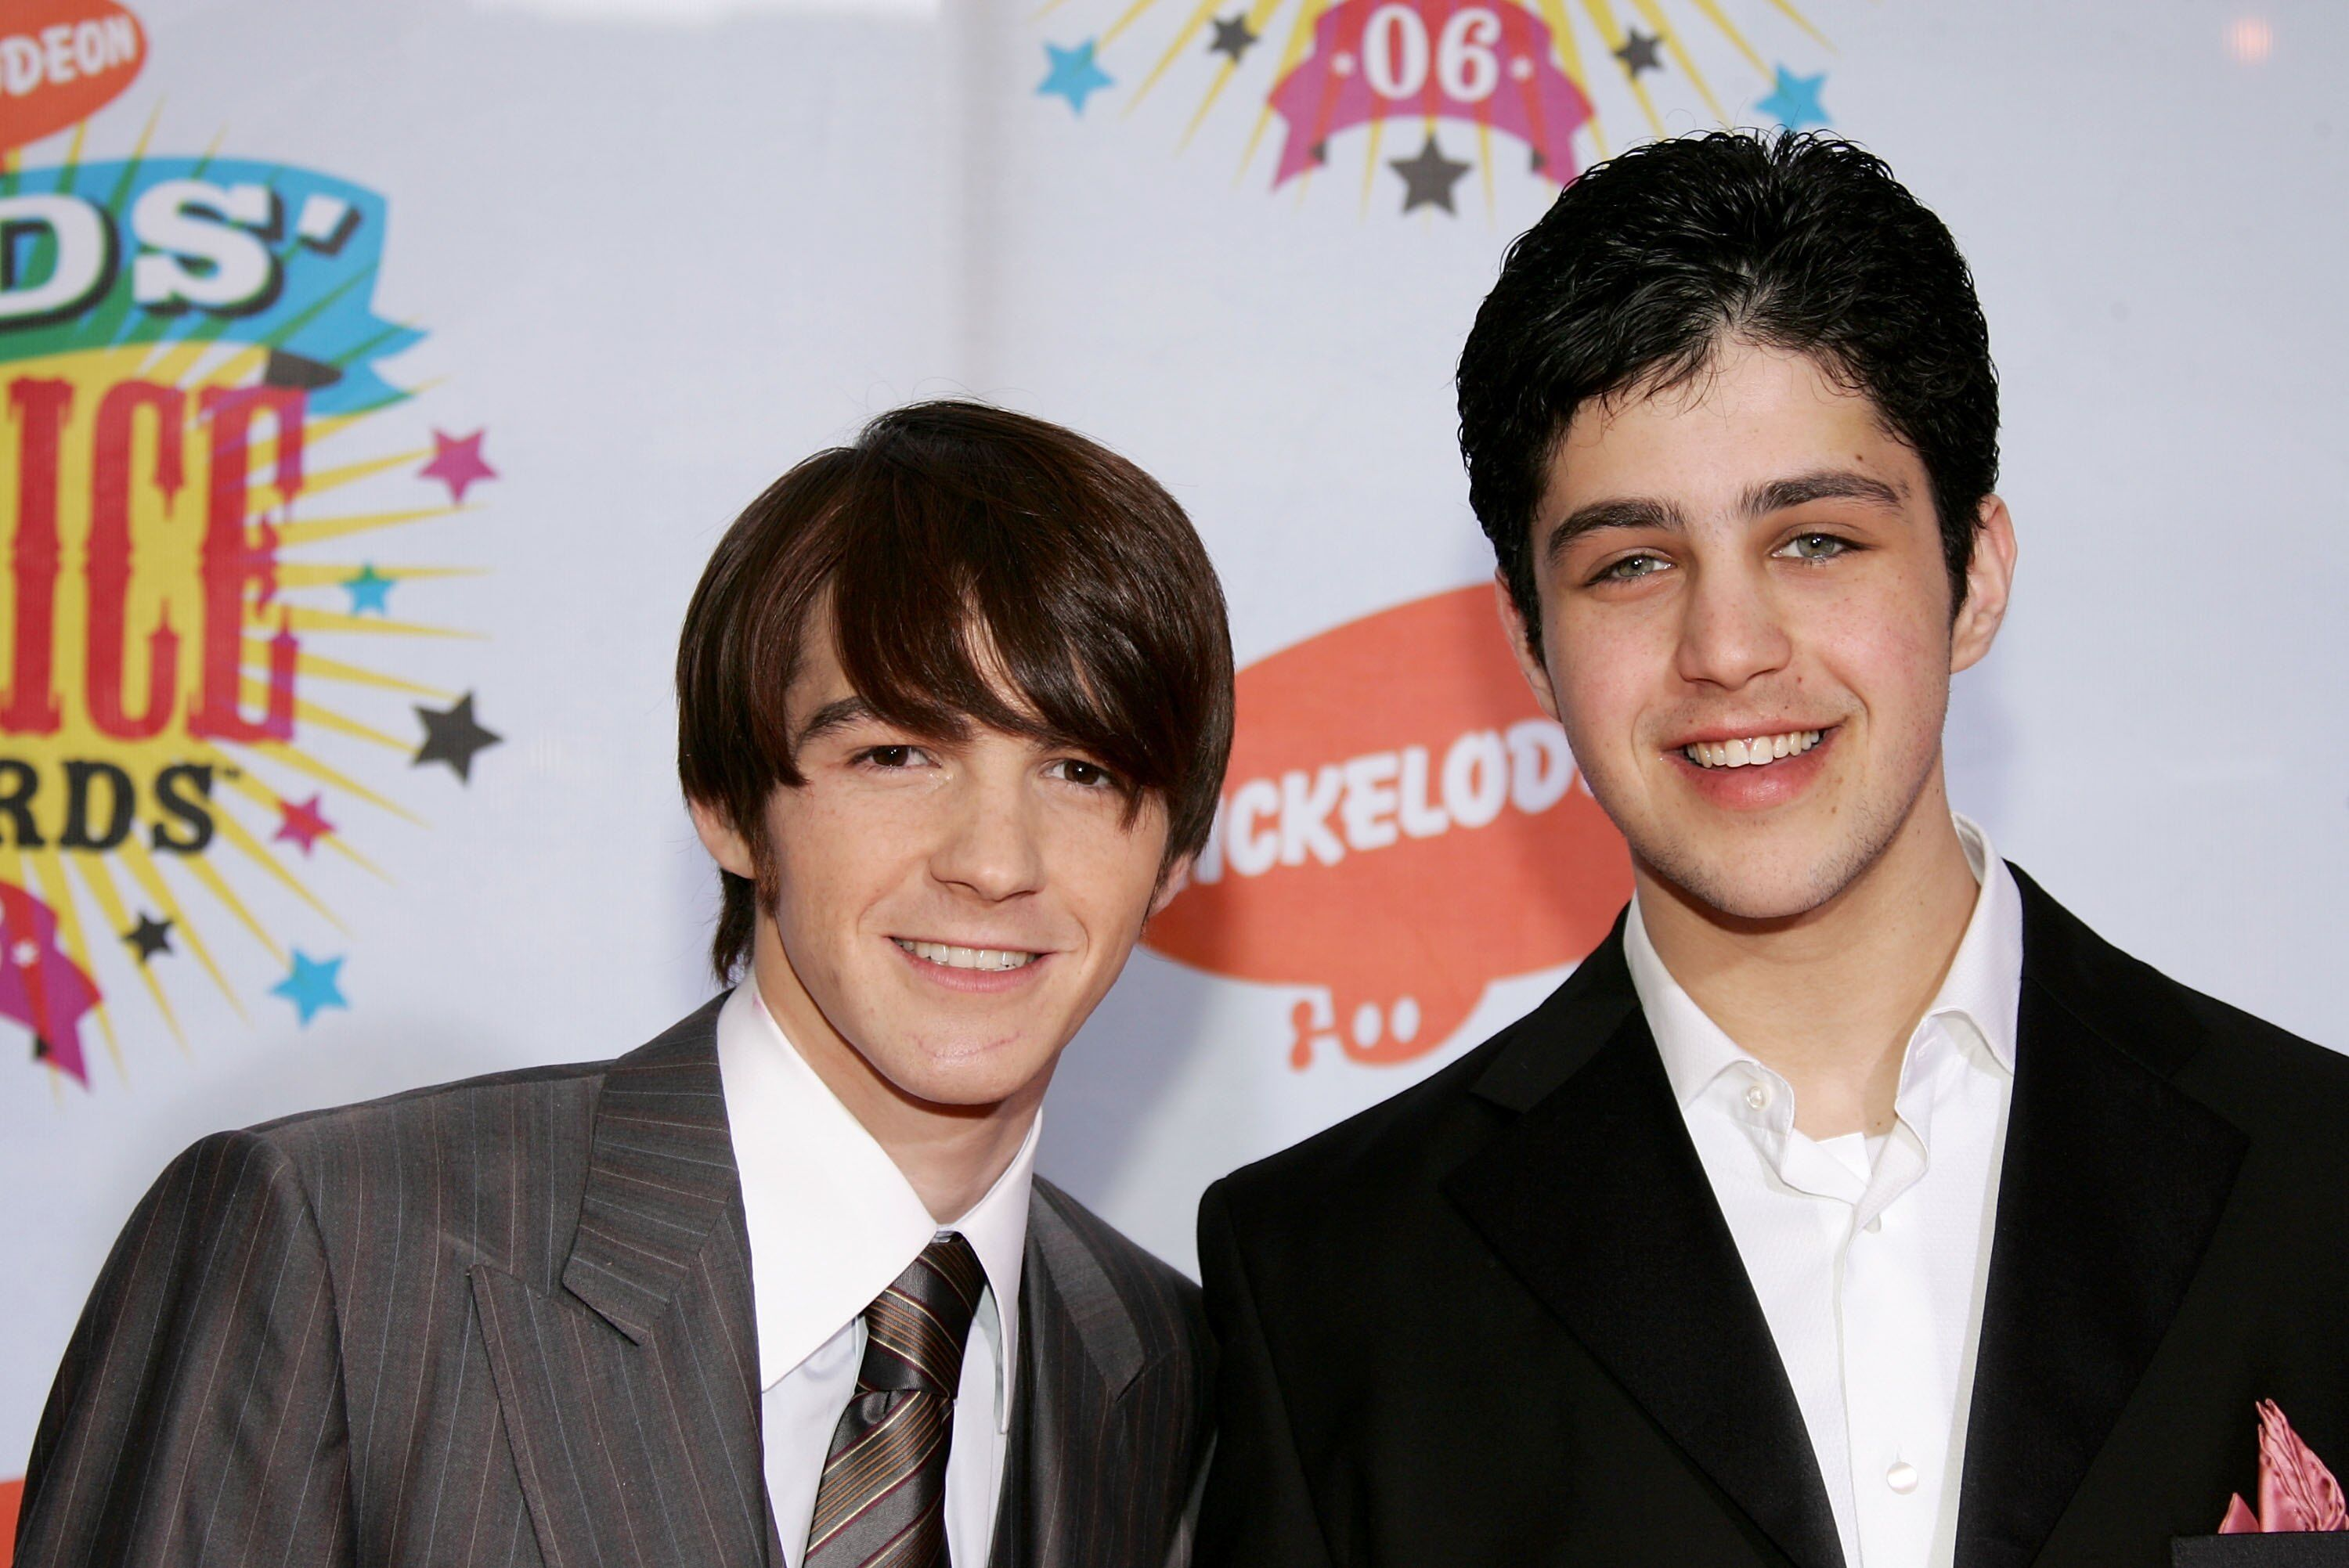 Drake Bell and Josh Peck are reuniting in a new show